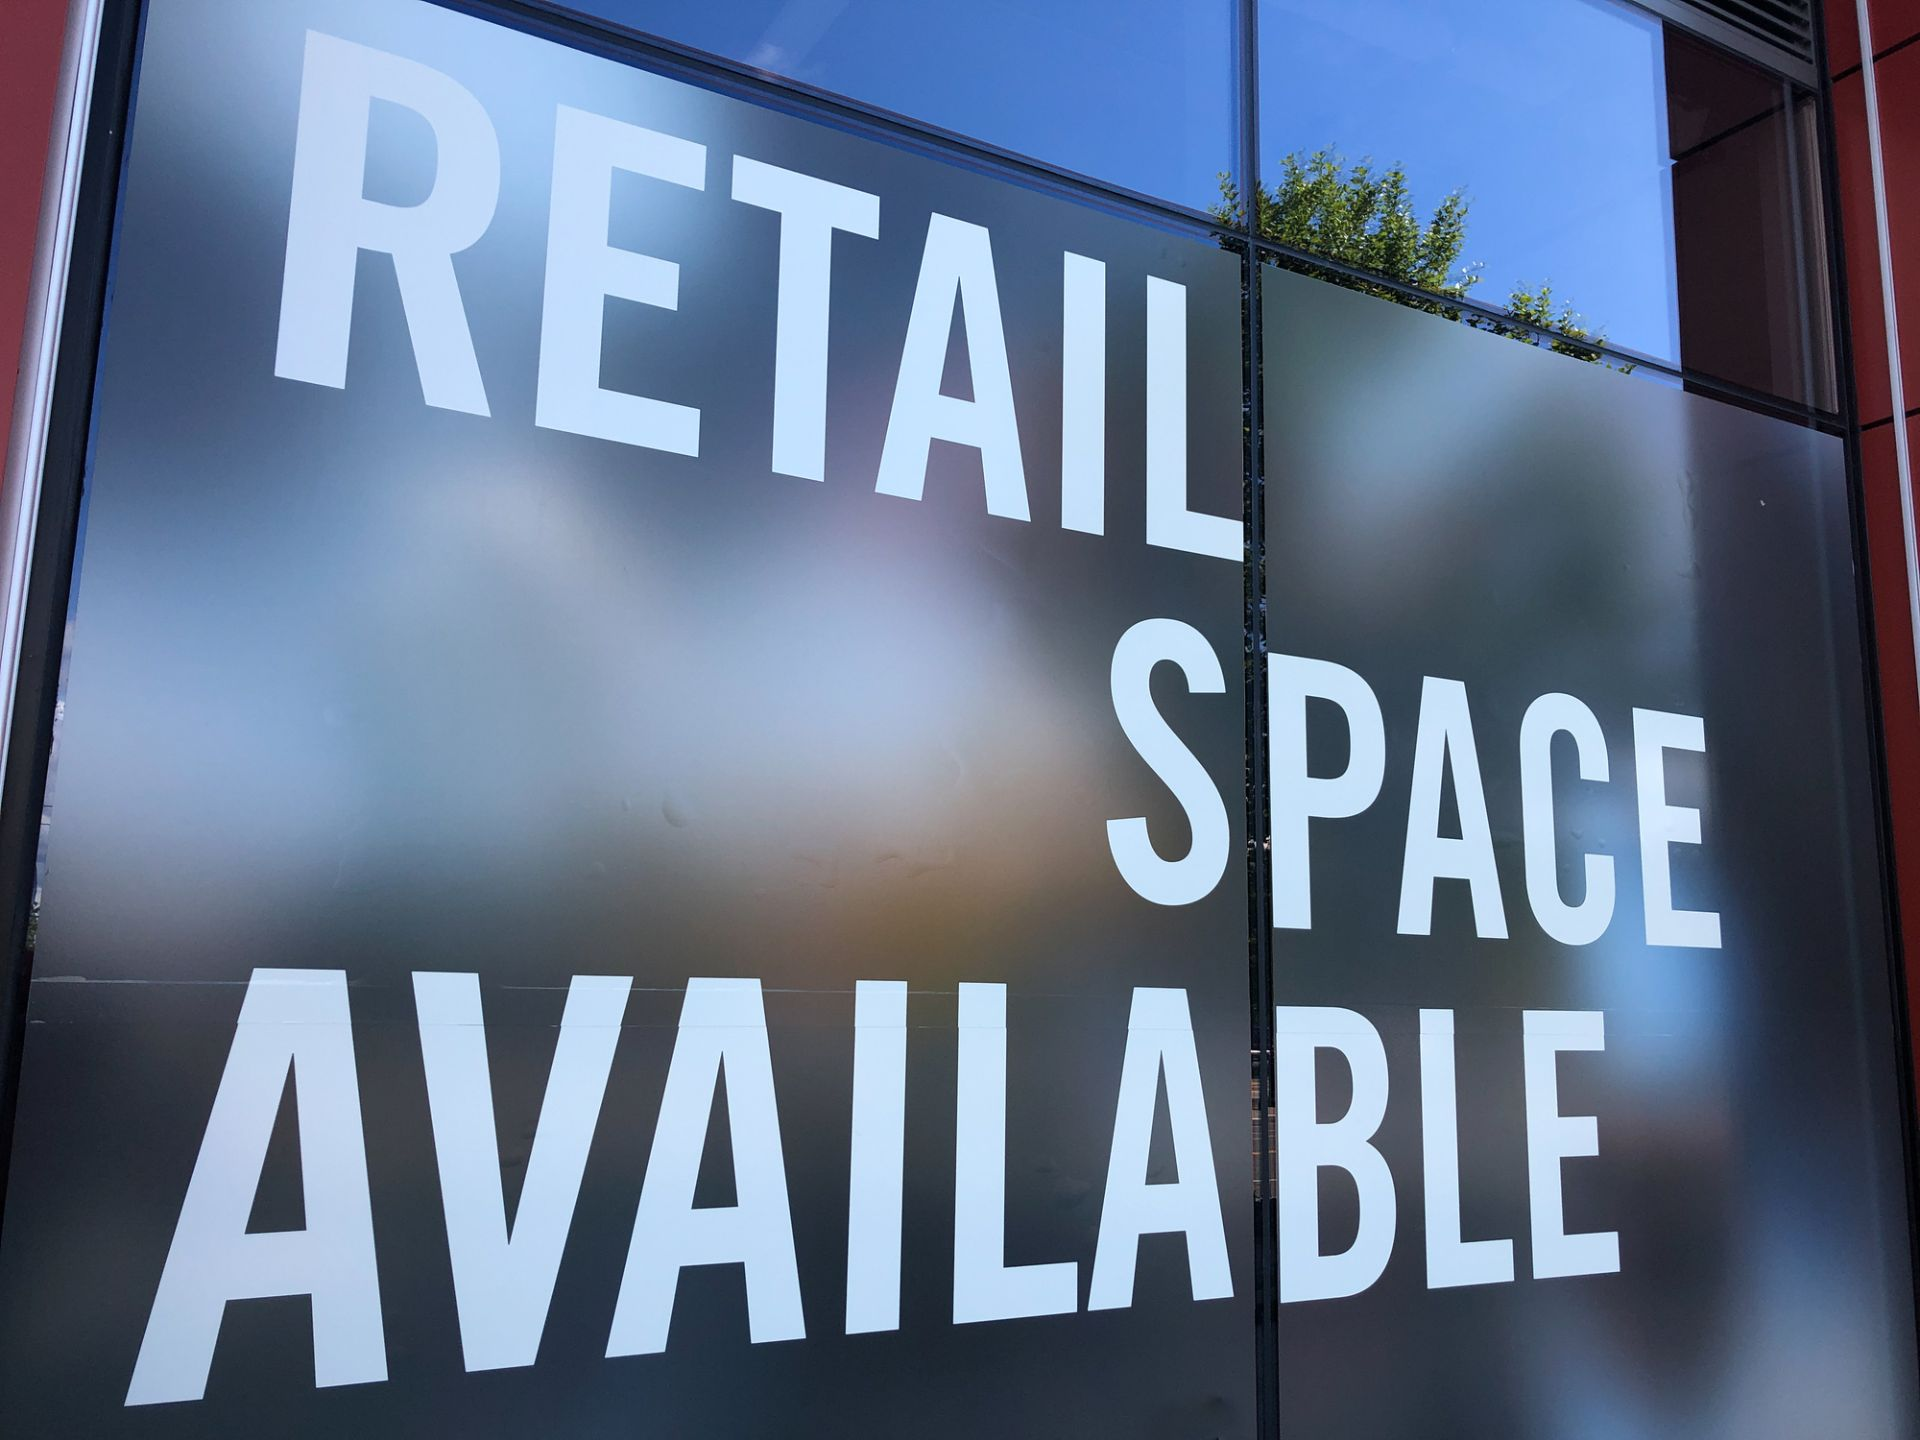 Commercial retail space available sign.